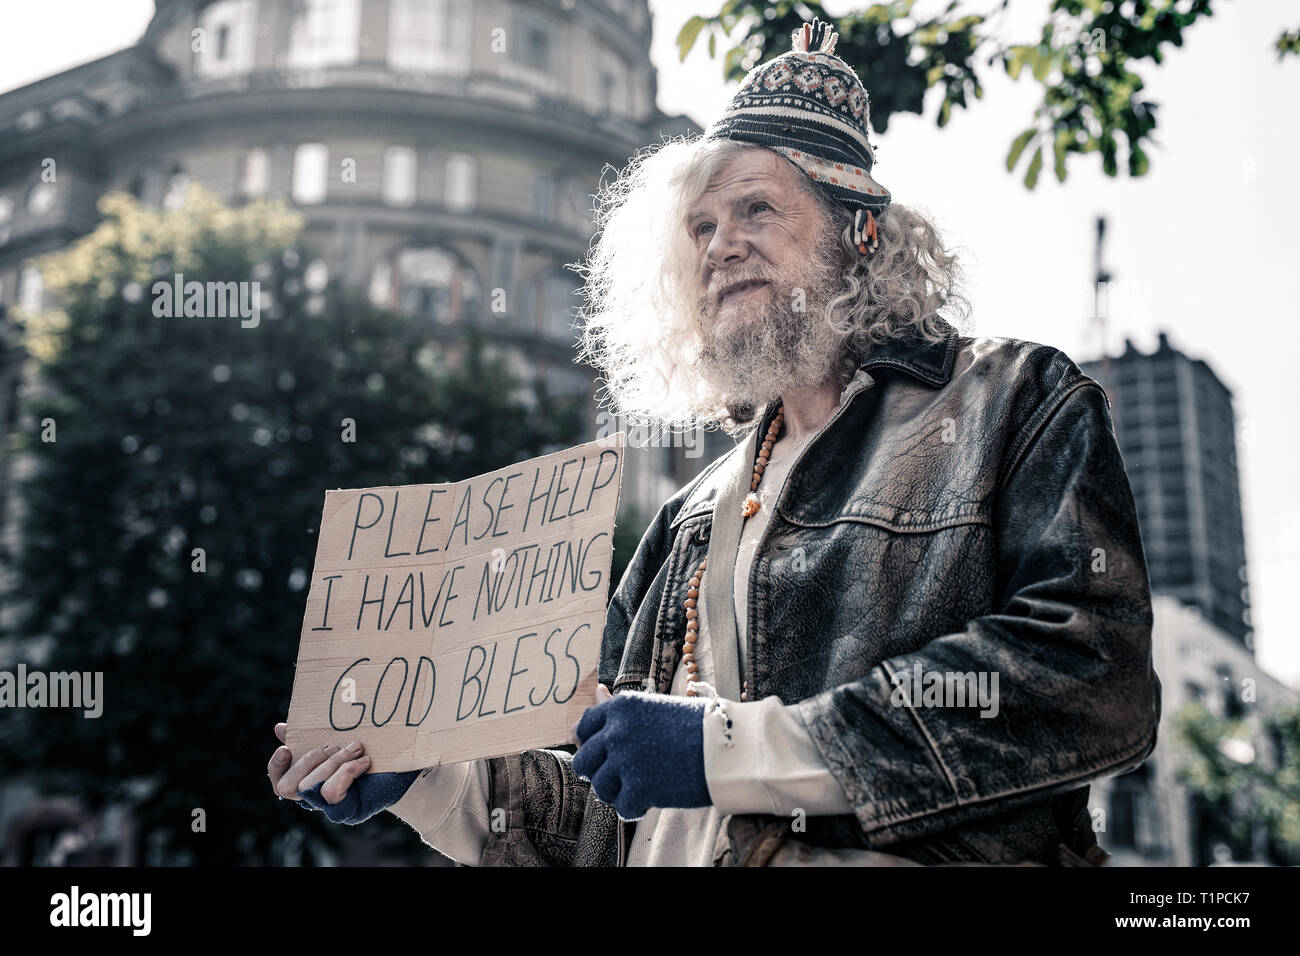 Poor distressed old man having nothing and living on the street - Stock Image